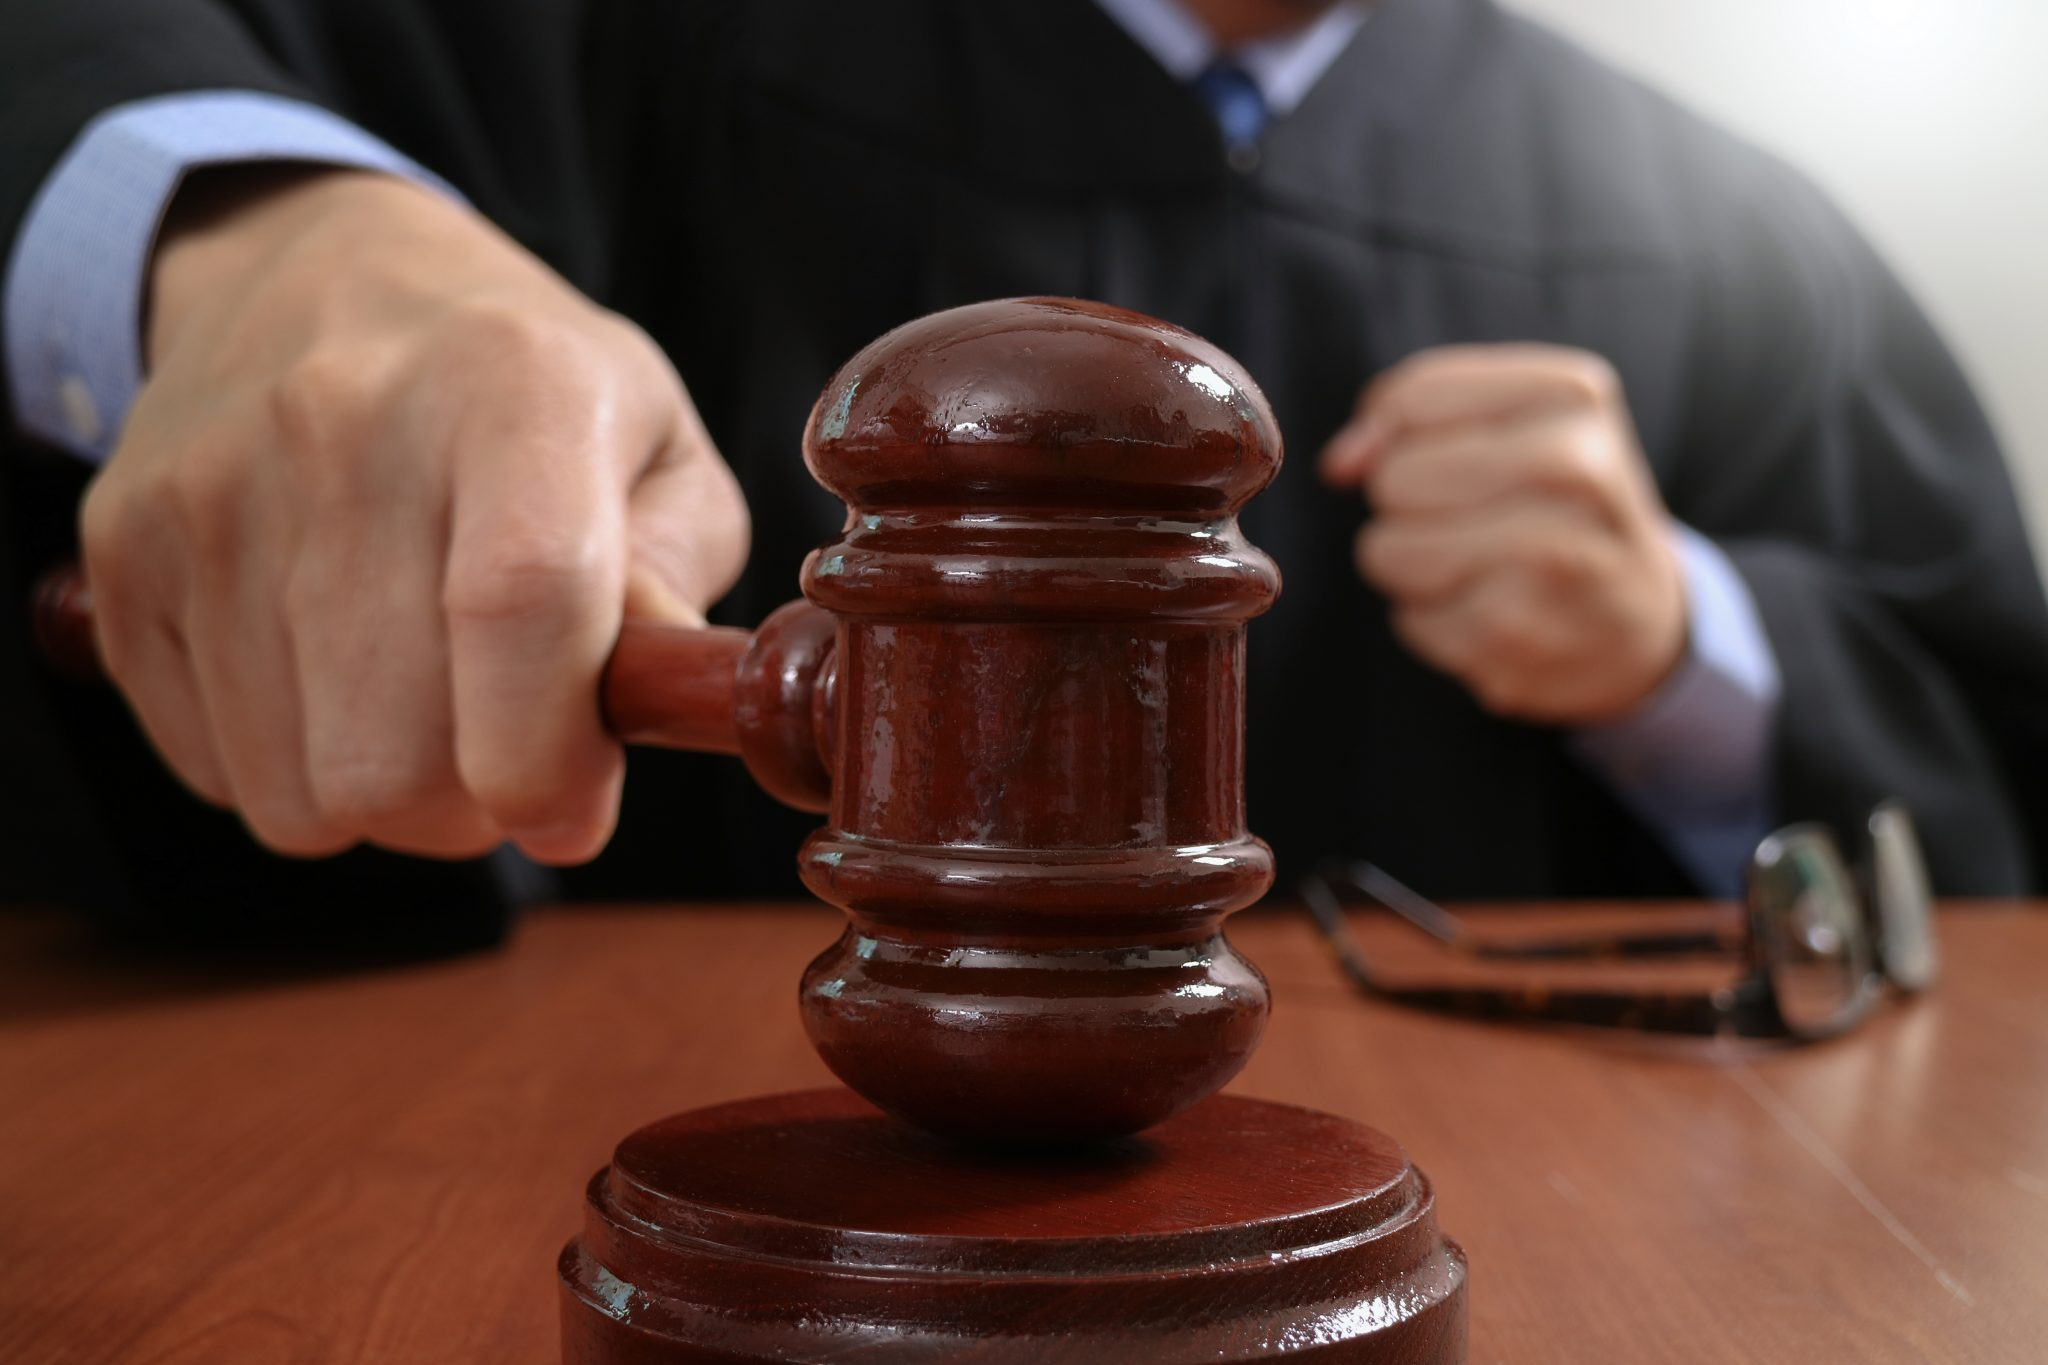 Judge with a gavel in a court room